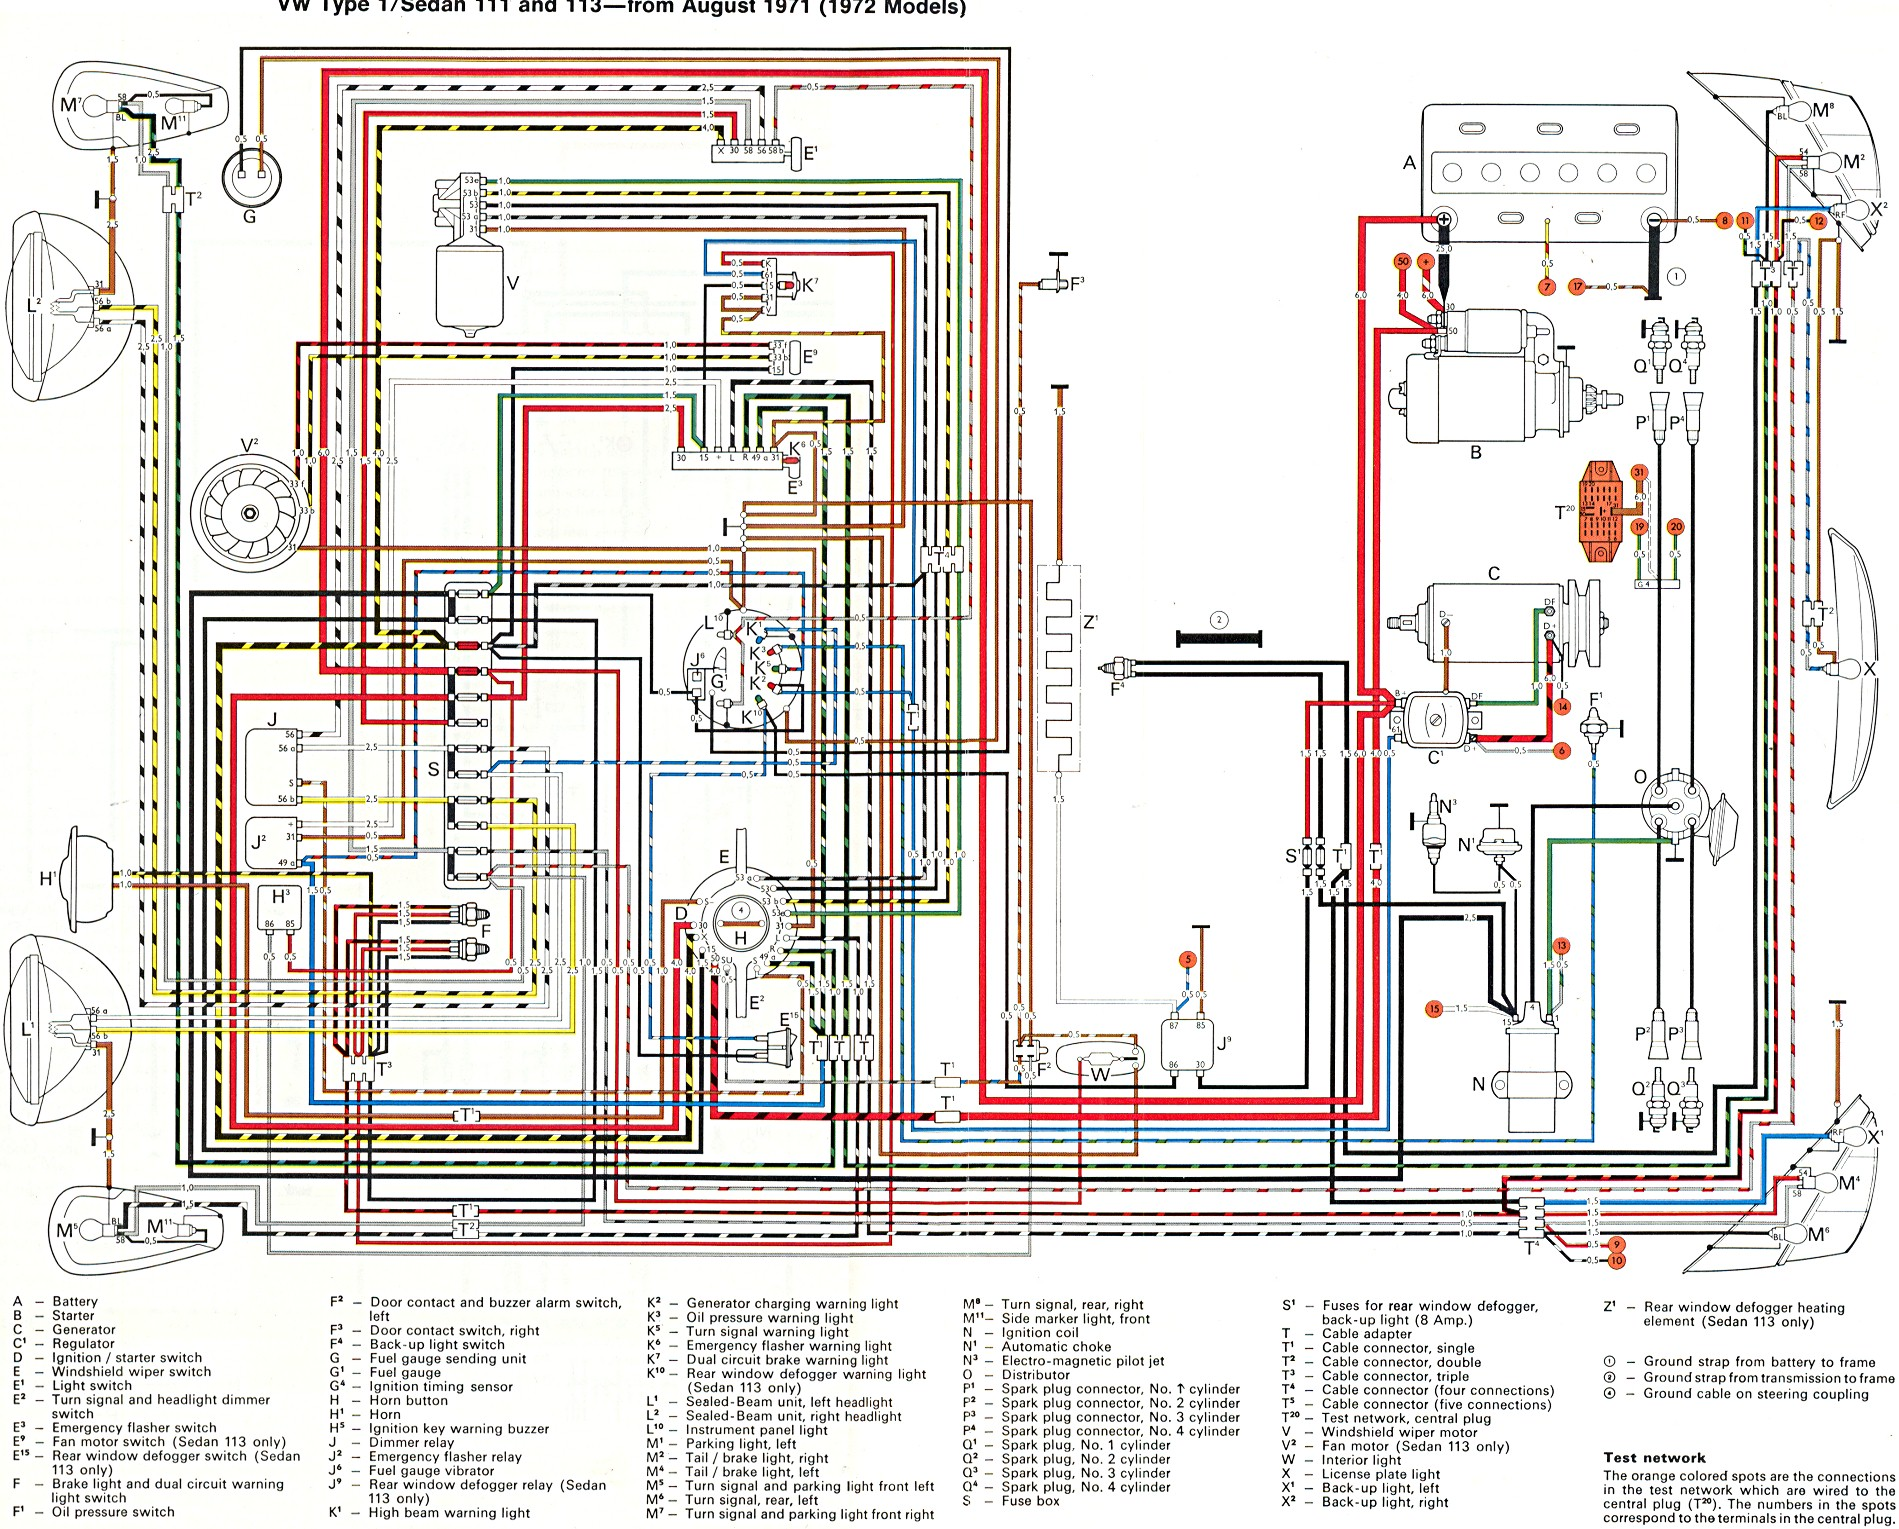 72 vw bus engine diagram super beetle engine diagram